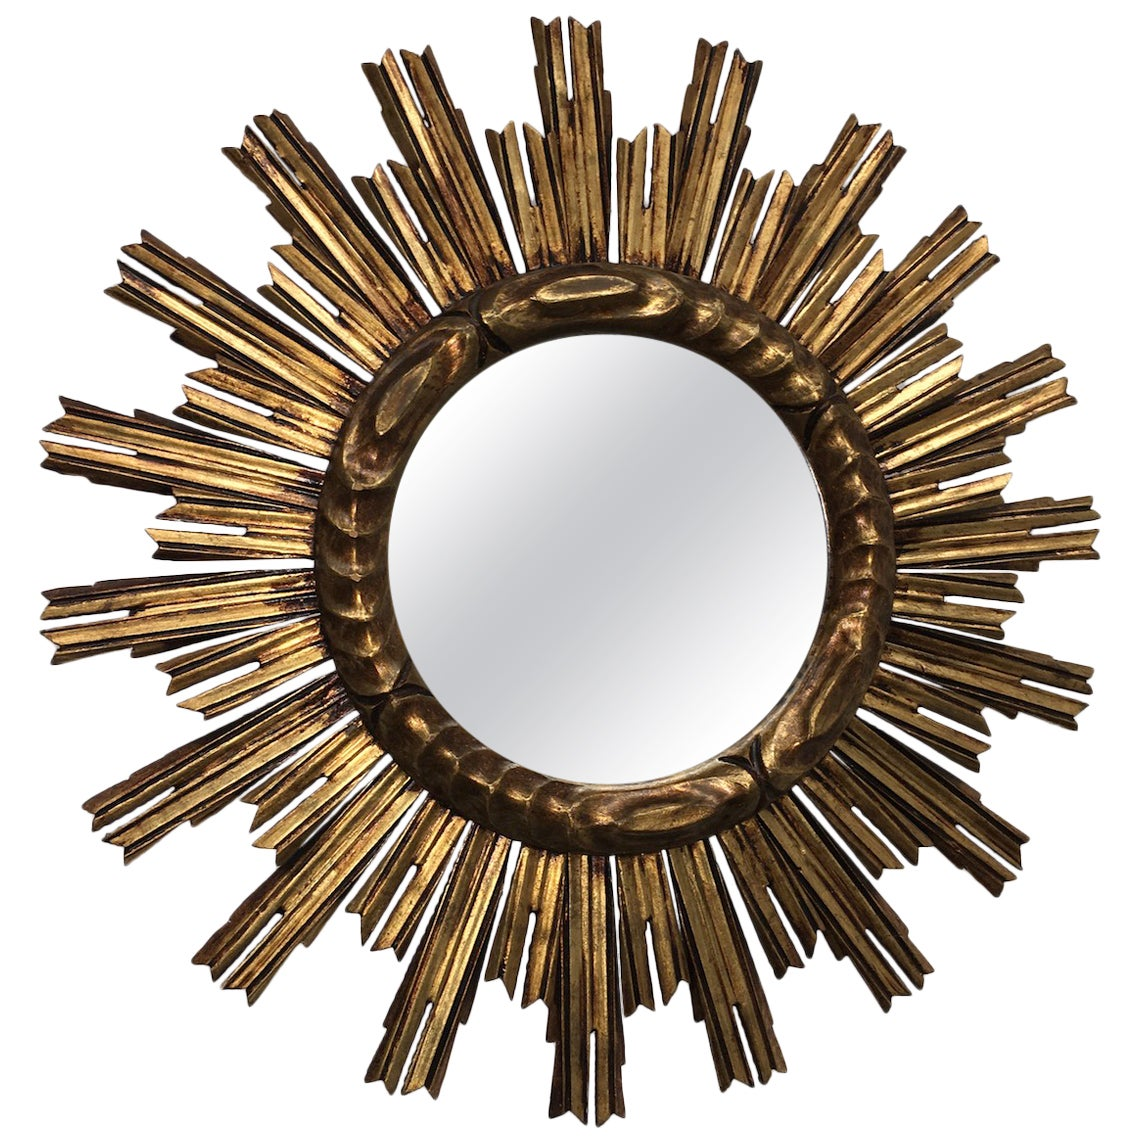 Exceptional Starburst Giltwood Mirror Vintage Italy by Moroder